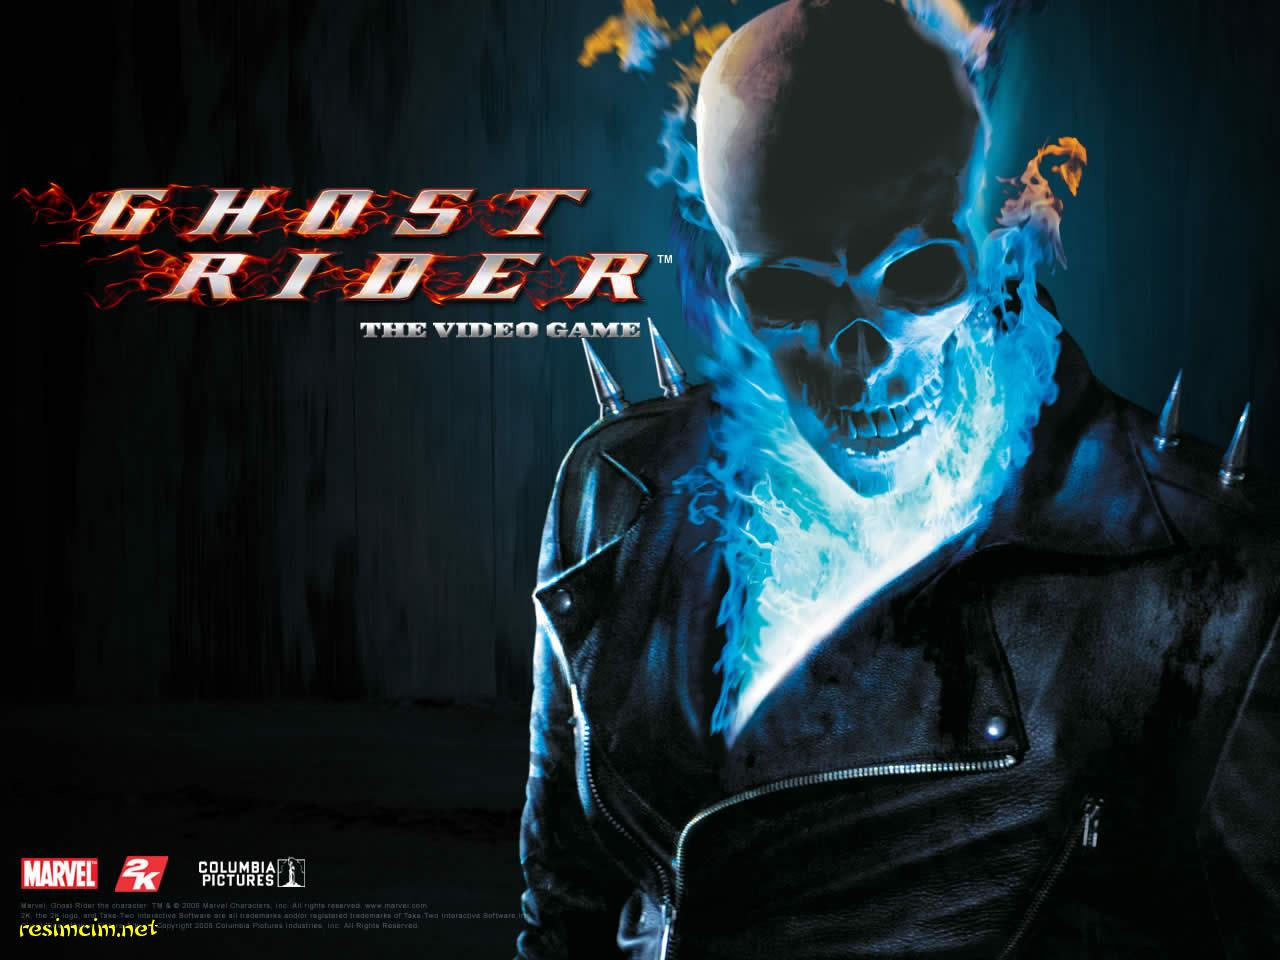 Collage techniques in Ghost Rider wallpapers. Posted by Lessy at 10:32 AM.